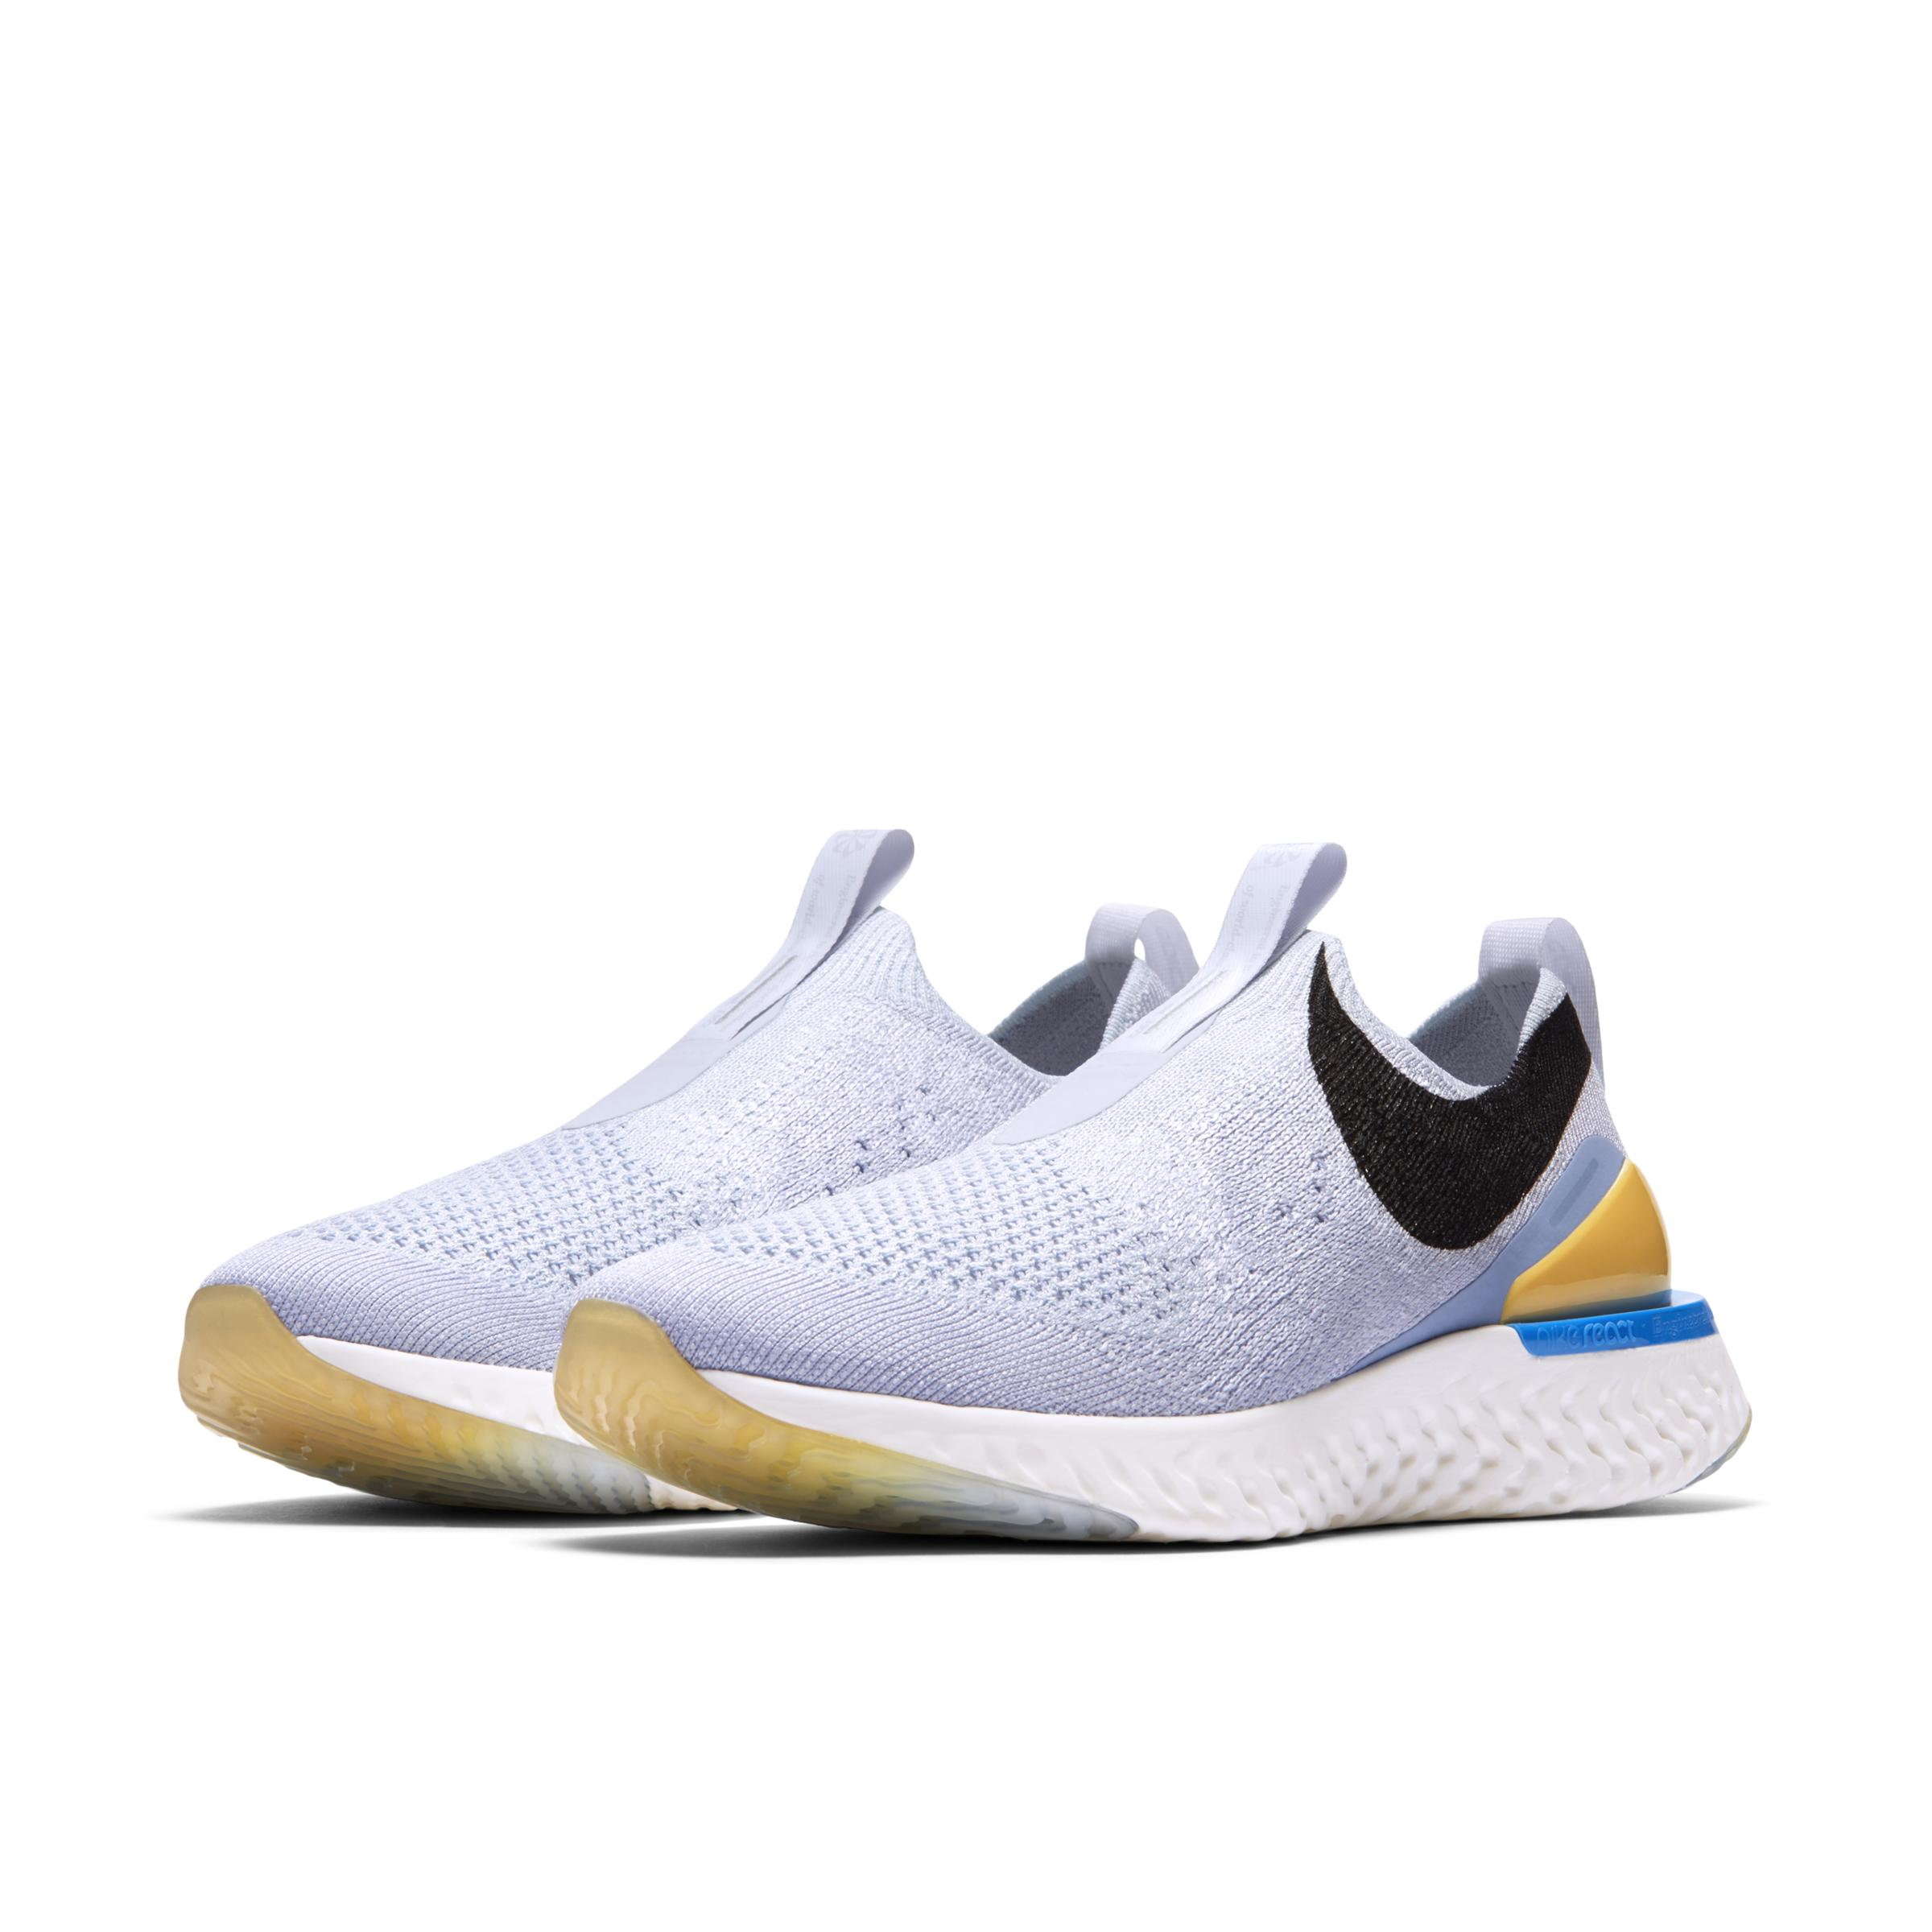 Epic Phantom React Zapatillas de running Nike de Tejido sintético de color Gris